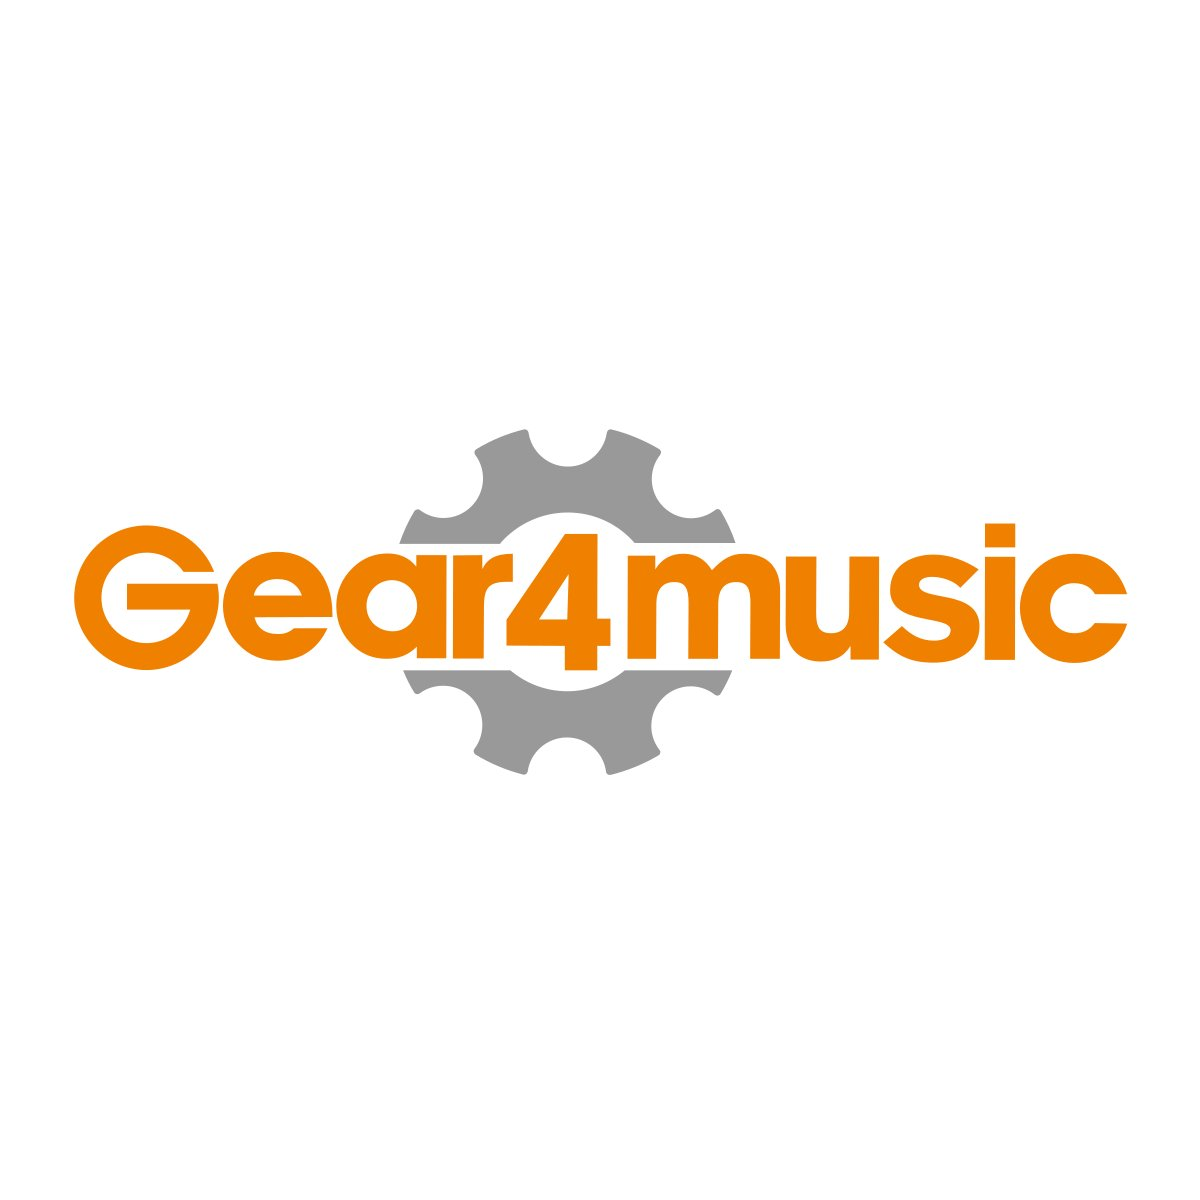 Funda de Platillo de Gear4music